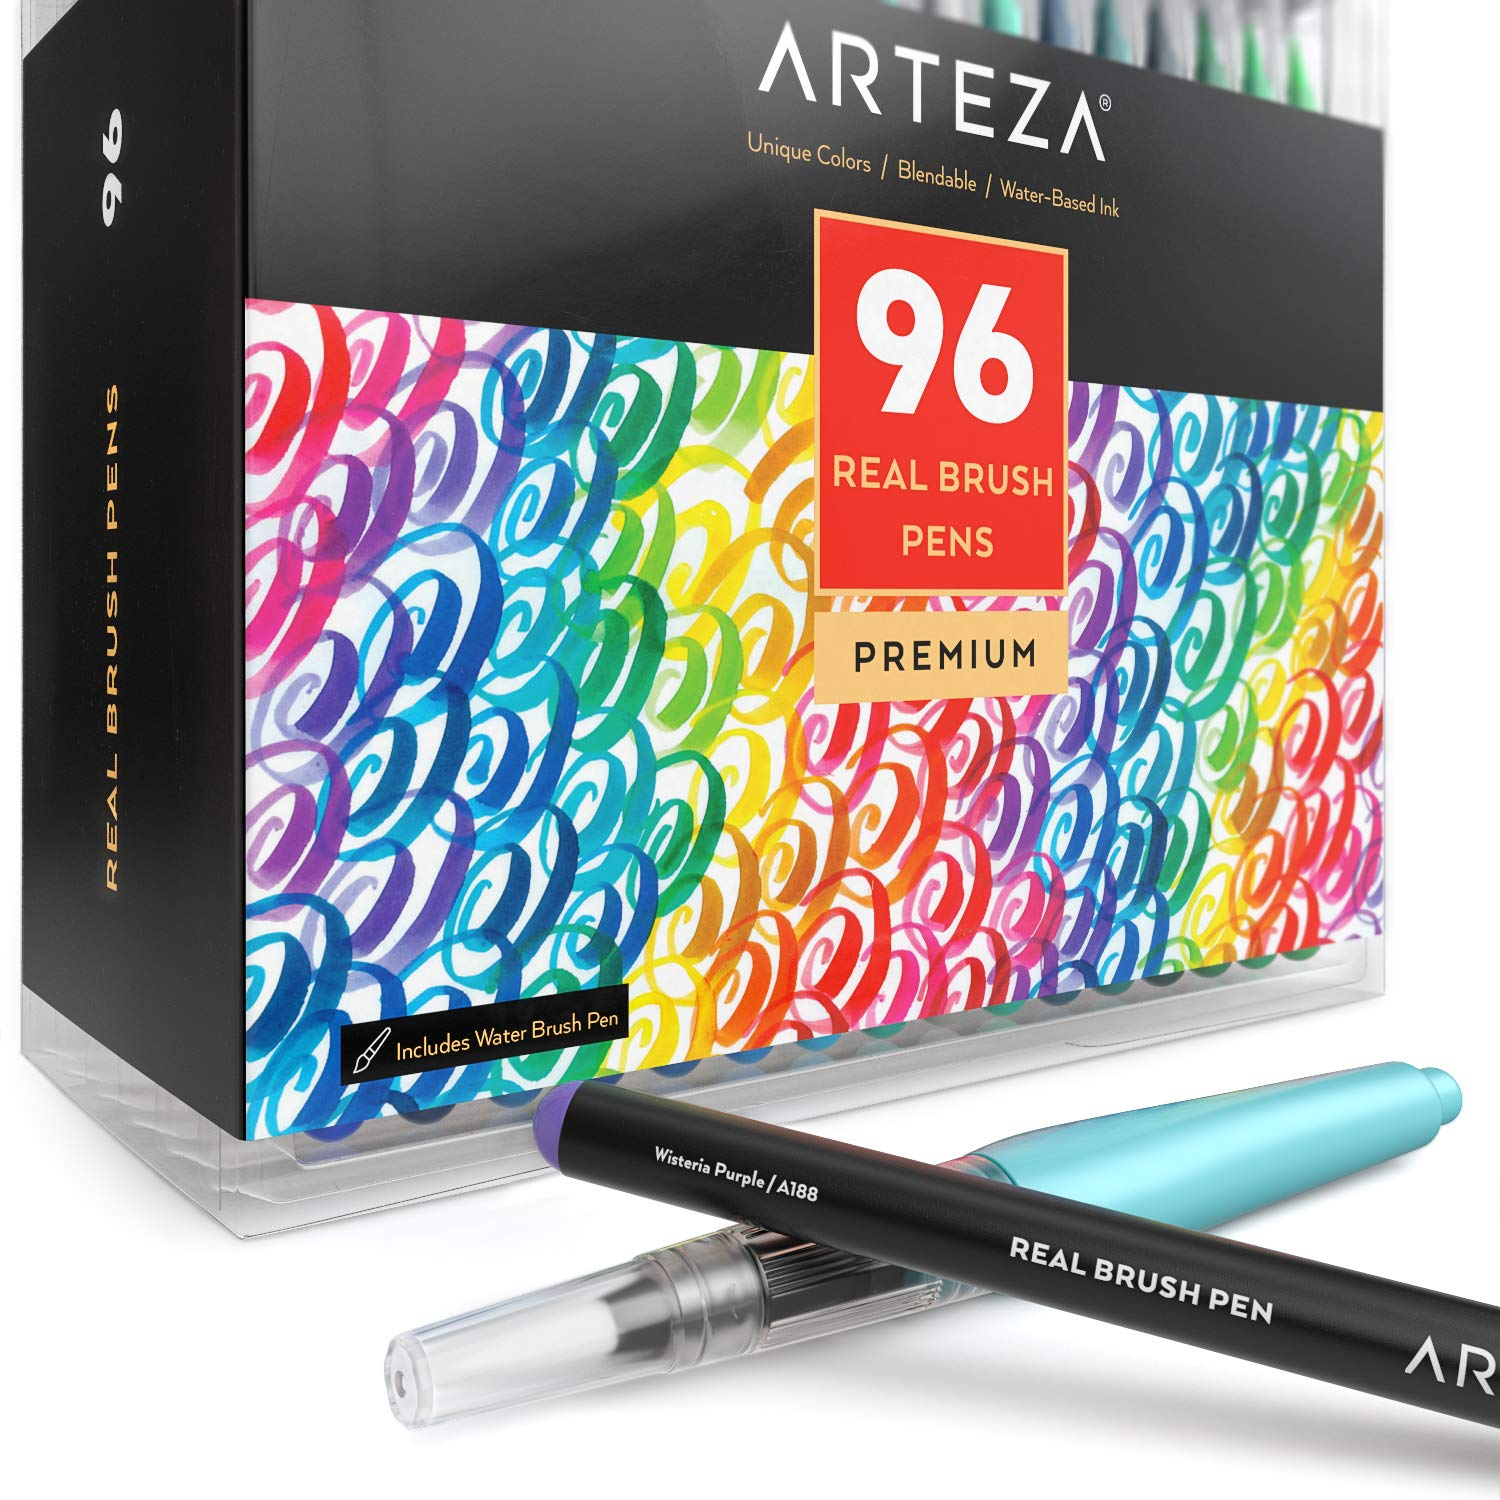 Arteza Real Brush Pens, 96 Paint Markers with Flexible Brush Tips, Professional Watercolor Pens for Painting, Drawing, Coloring with Water Brush, 100% Nontoxic by ARTEZA